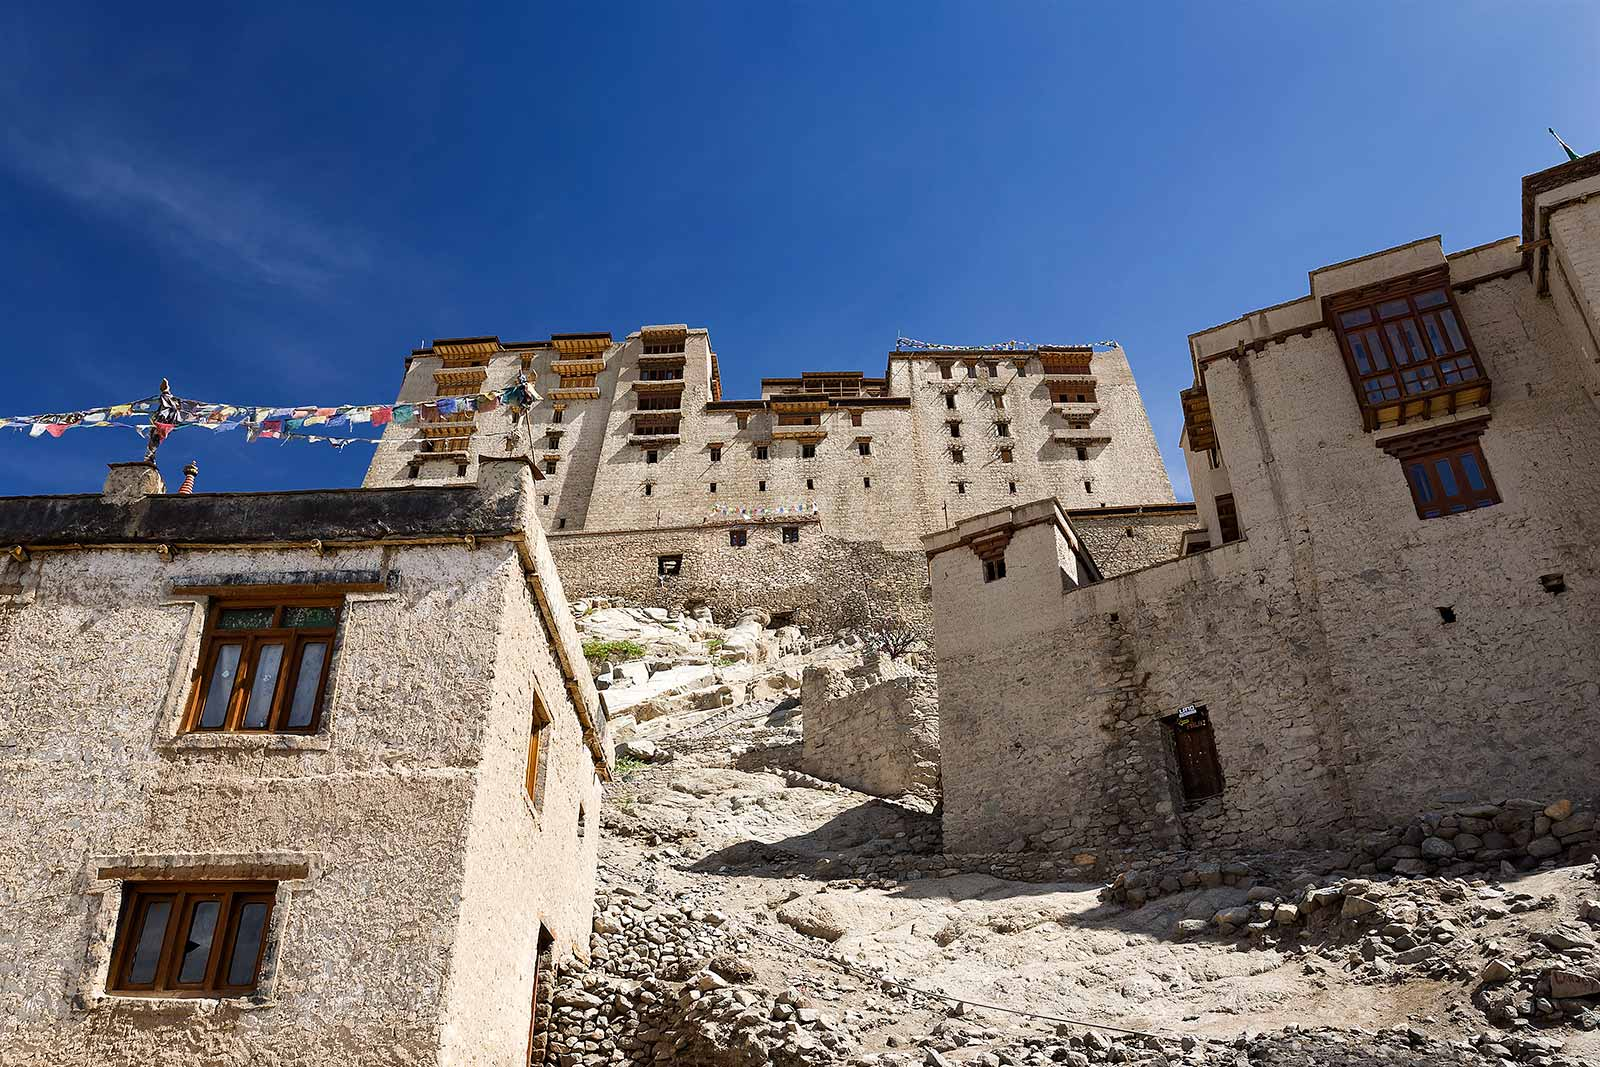 Leh Palace is the city's dominant structure and architectural icon.